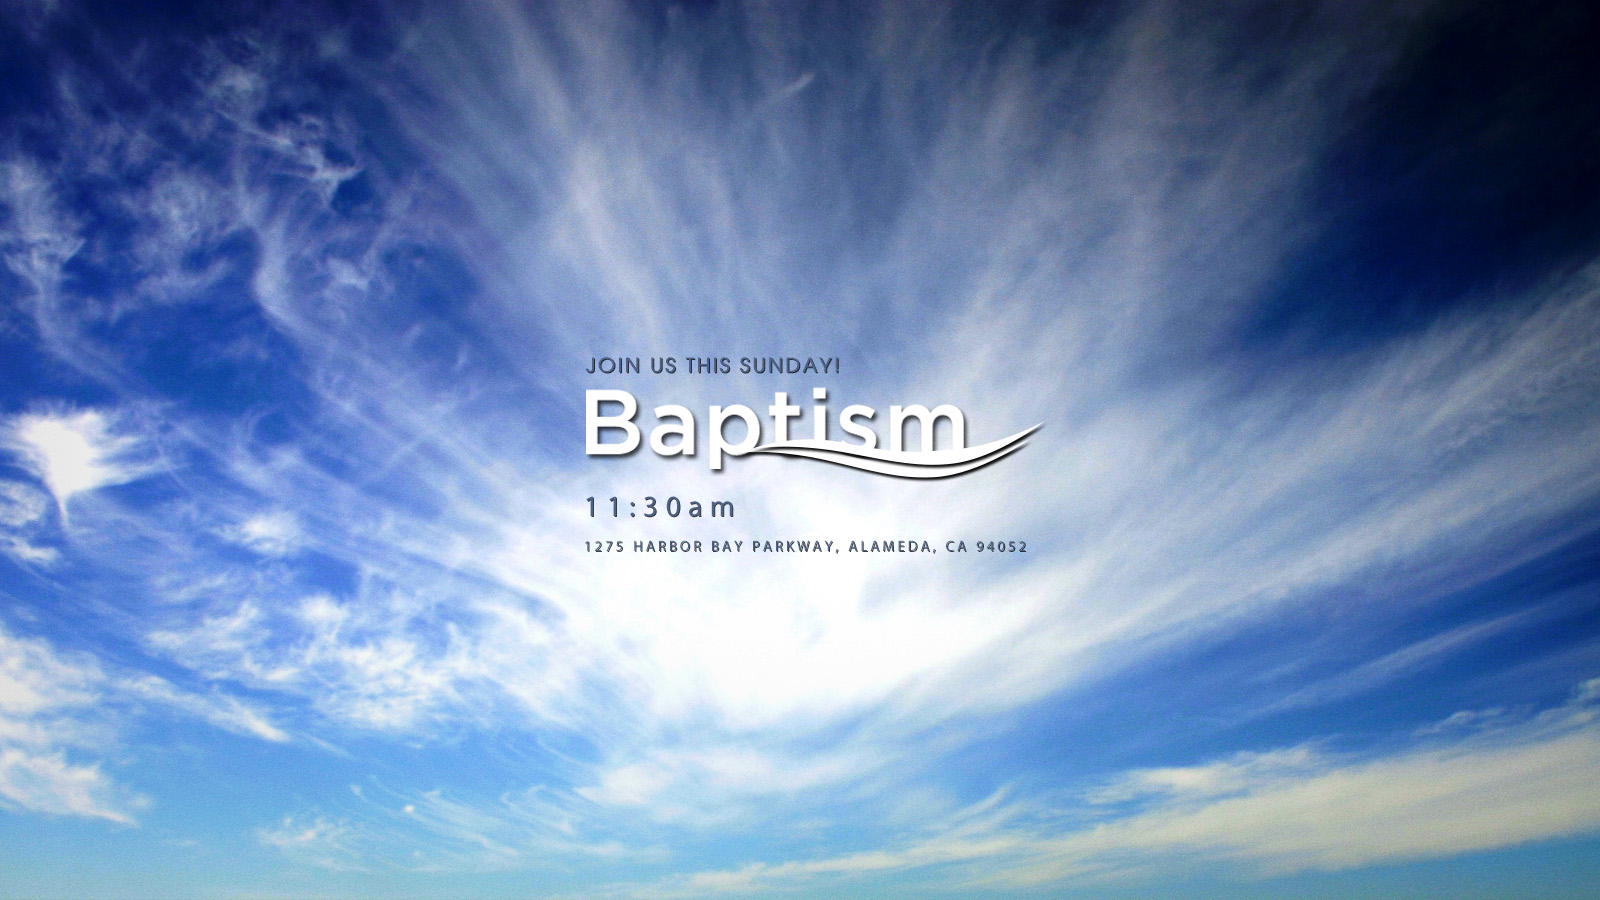 Join us as we celebrate the Baptism of our brothers and sisters and recount God's faithfulness in their lives.